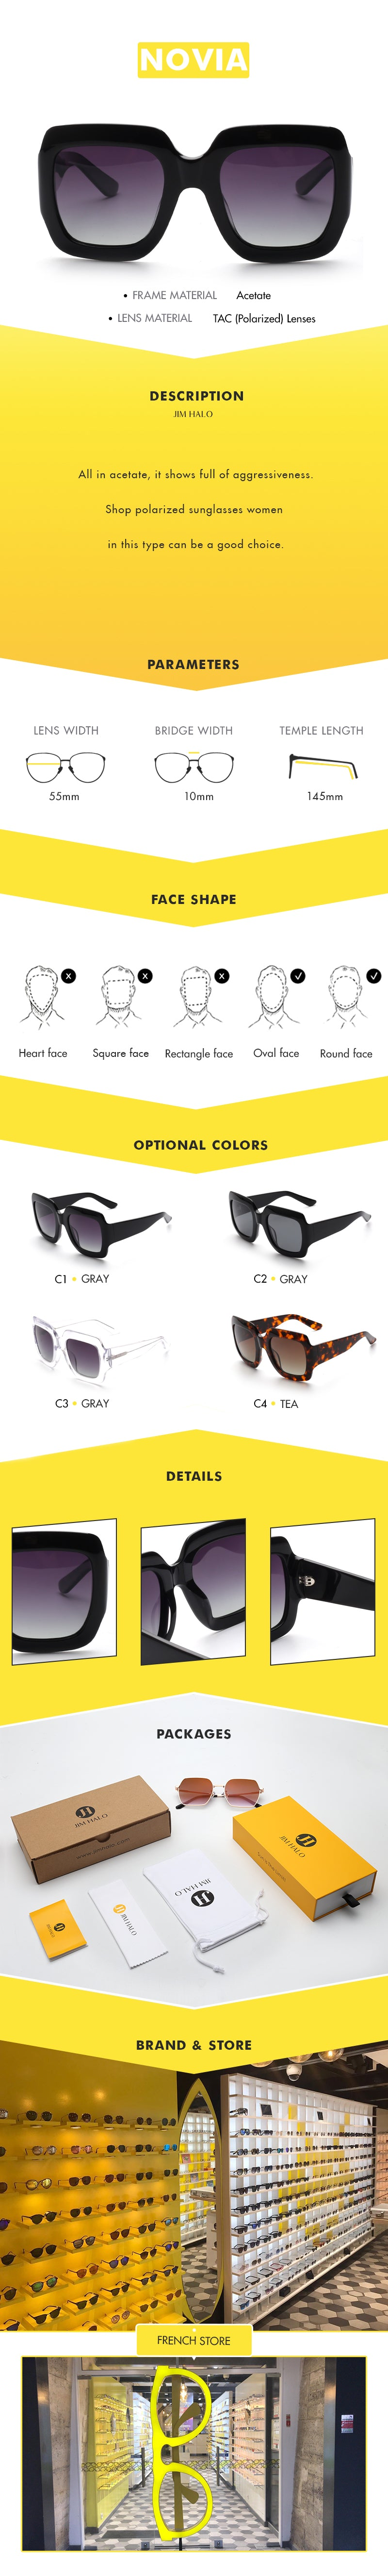 All in acetate, it shows full of aggressiveness.Shop polarized sunglasses women in this type can be a good choice.